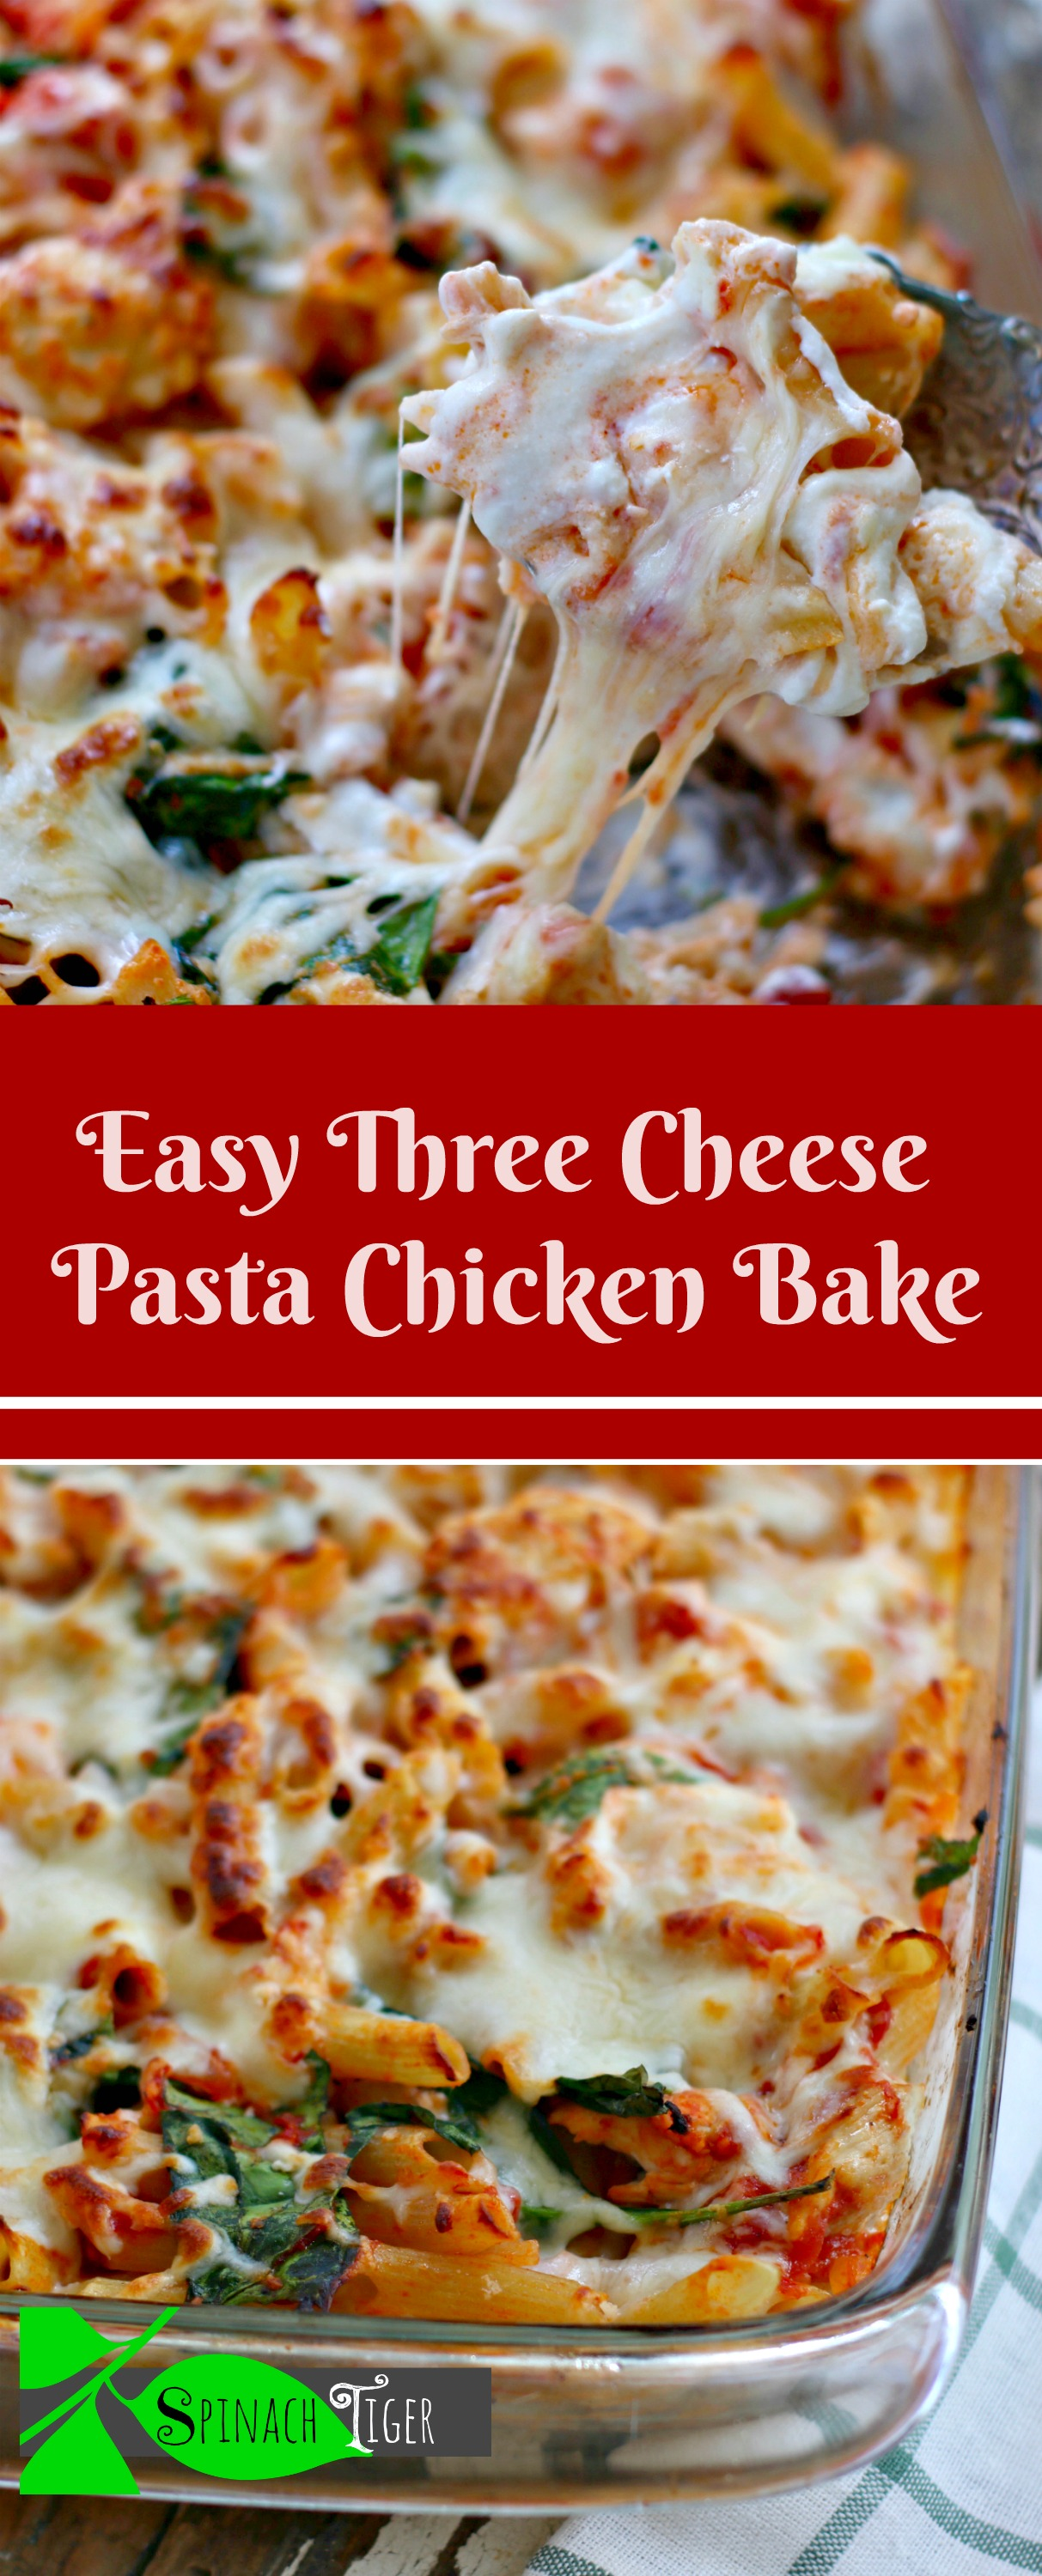 Easy Pasta Chicken Bake Gluten Free Pasta from Spinach tiger